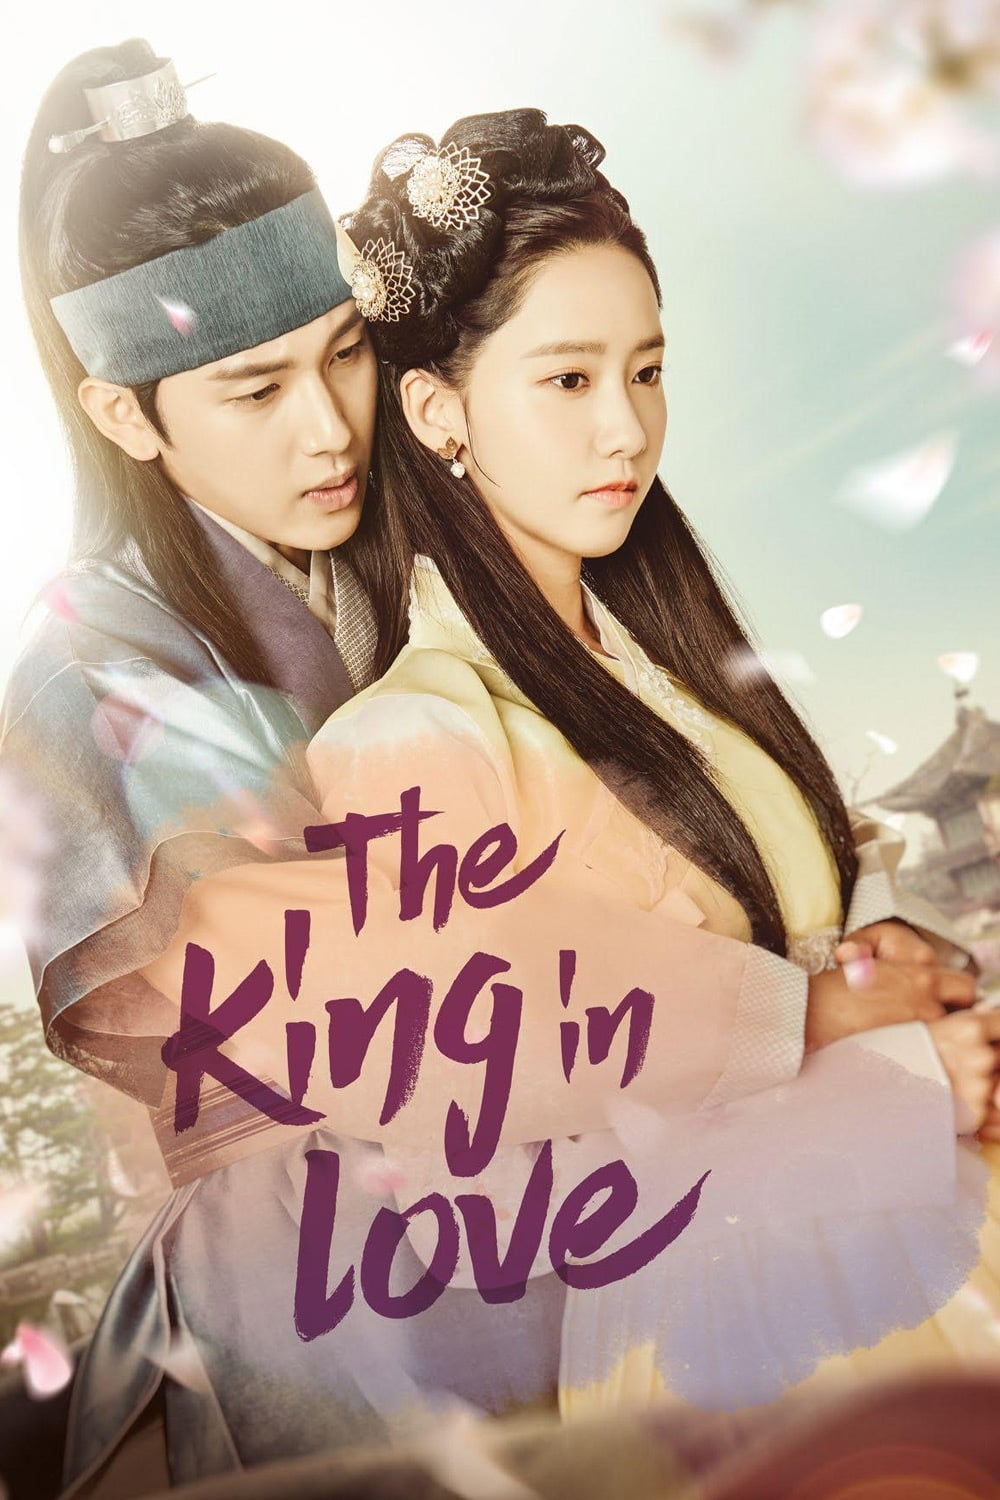 The King In Love 2017 Korean Hindi Dubbed Complete Drama 720p AVC AAC HoTsPuRs 24xHD [13.96 GB]